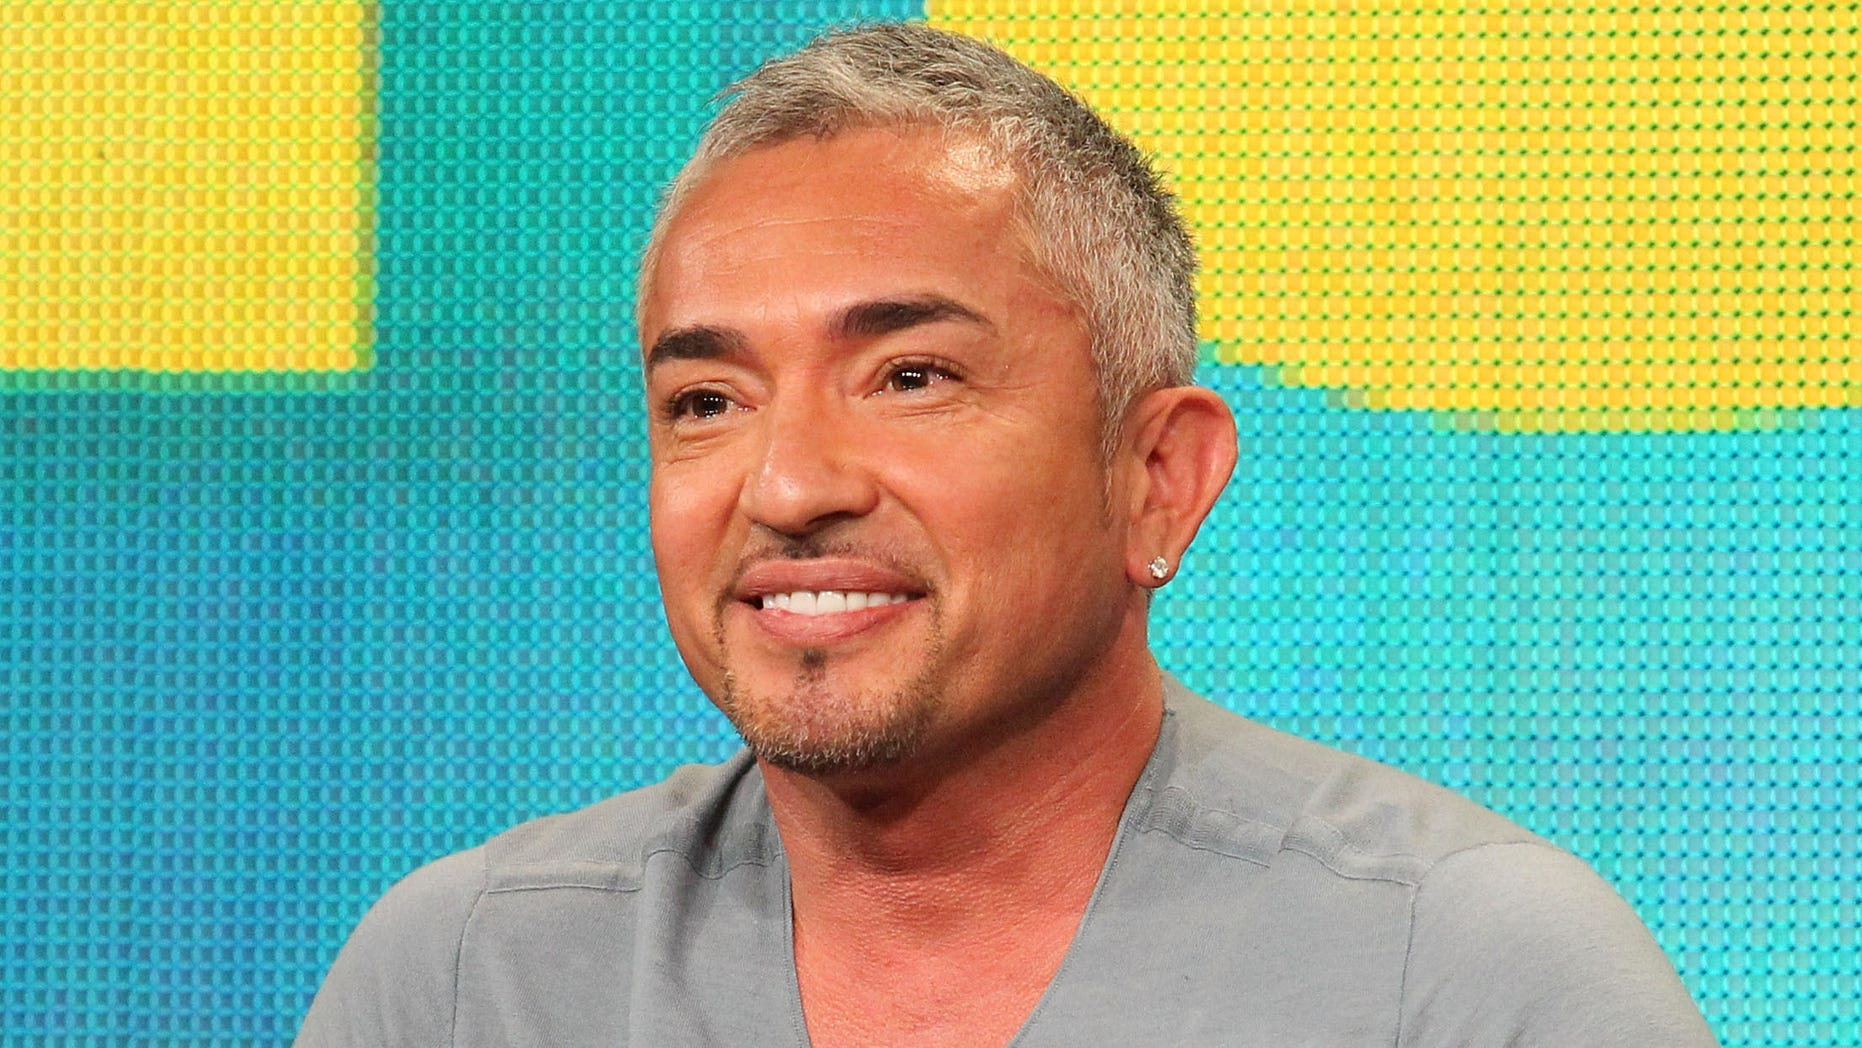 """PASADENA, CA - JANUARY 13:  Cesar Millan of the television show """"Dog Whisperer with Cesar Millan"""" speaks during the National Geographic Channel and Nat Geo WILD portion of the 2012 Television Critics Association Press Tour at The Langham Huntington Hotel and Spa on January 13, 2012 in Pasadena, California.  (Photo by Frederick M. Brown/Getty Images)"""